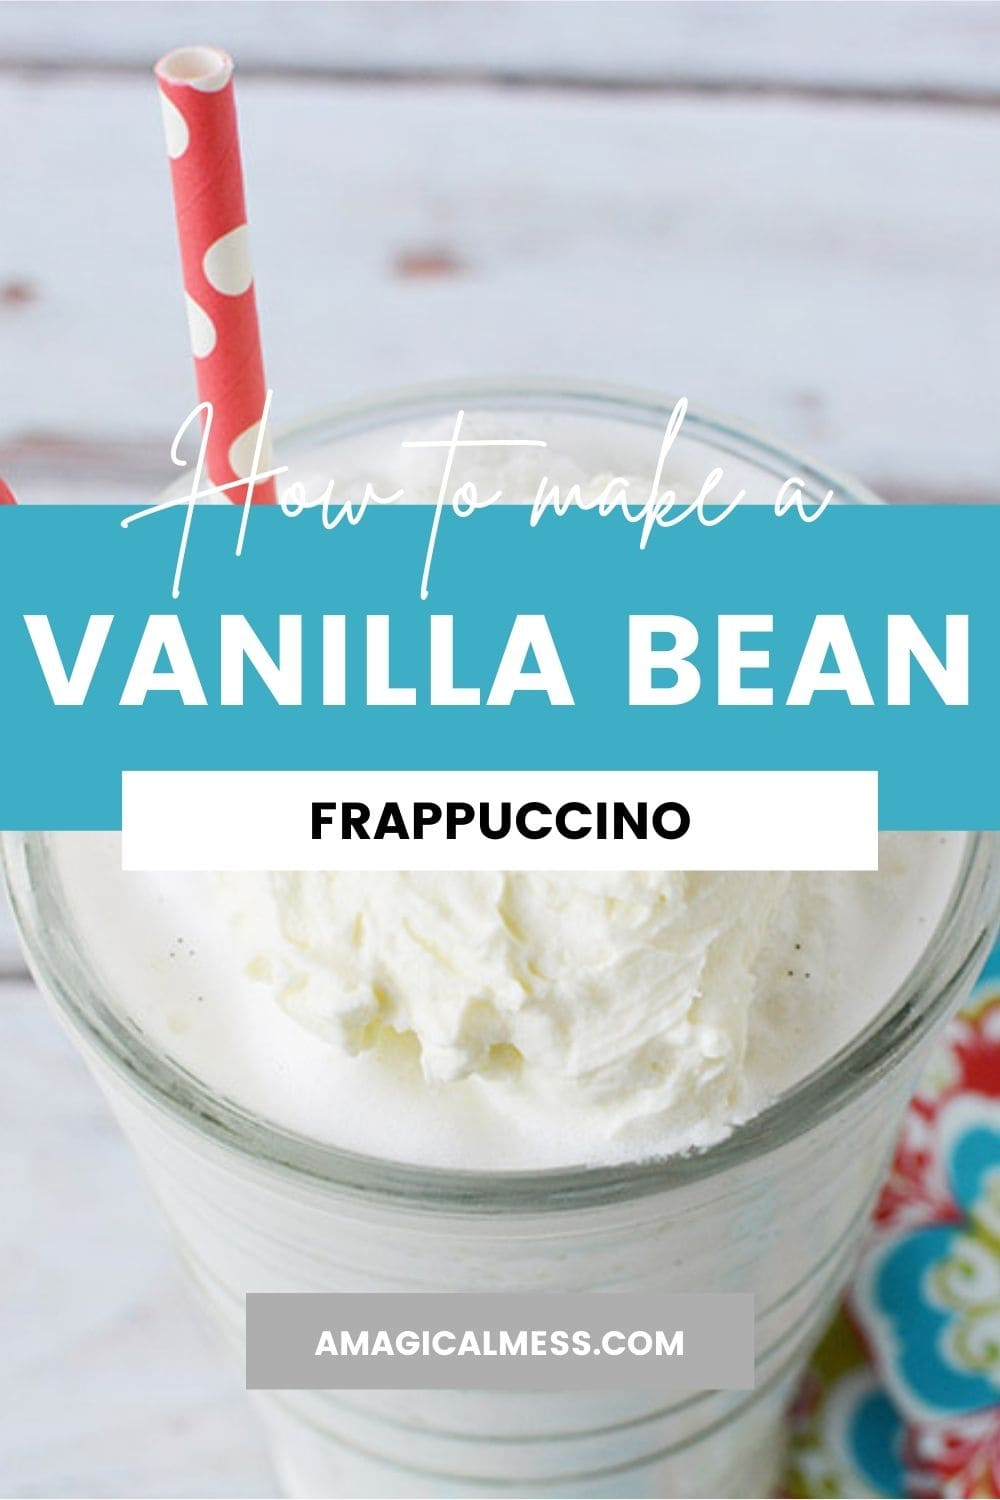 vanilla bean frappuccino in a glass with a straw